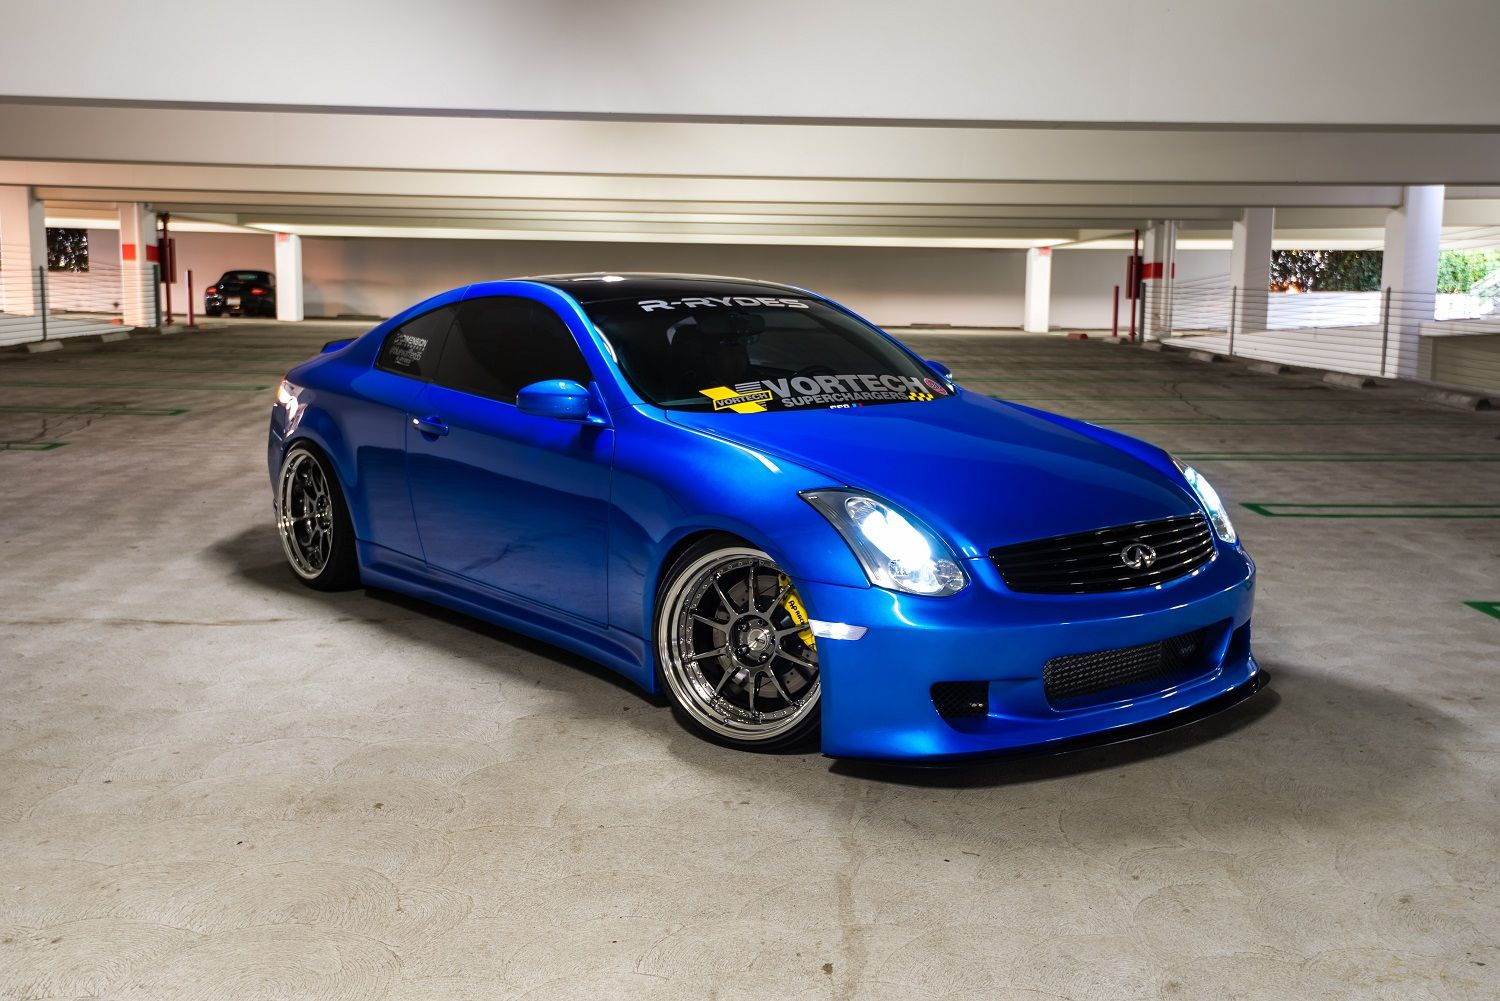 2005 Infiniti G35 Coupe Lowered On Ssr Sp3 Wheels Autospice